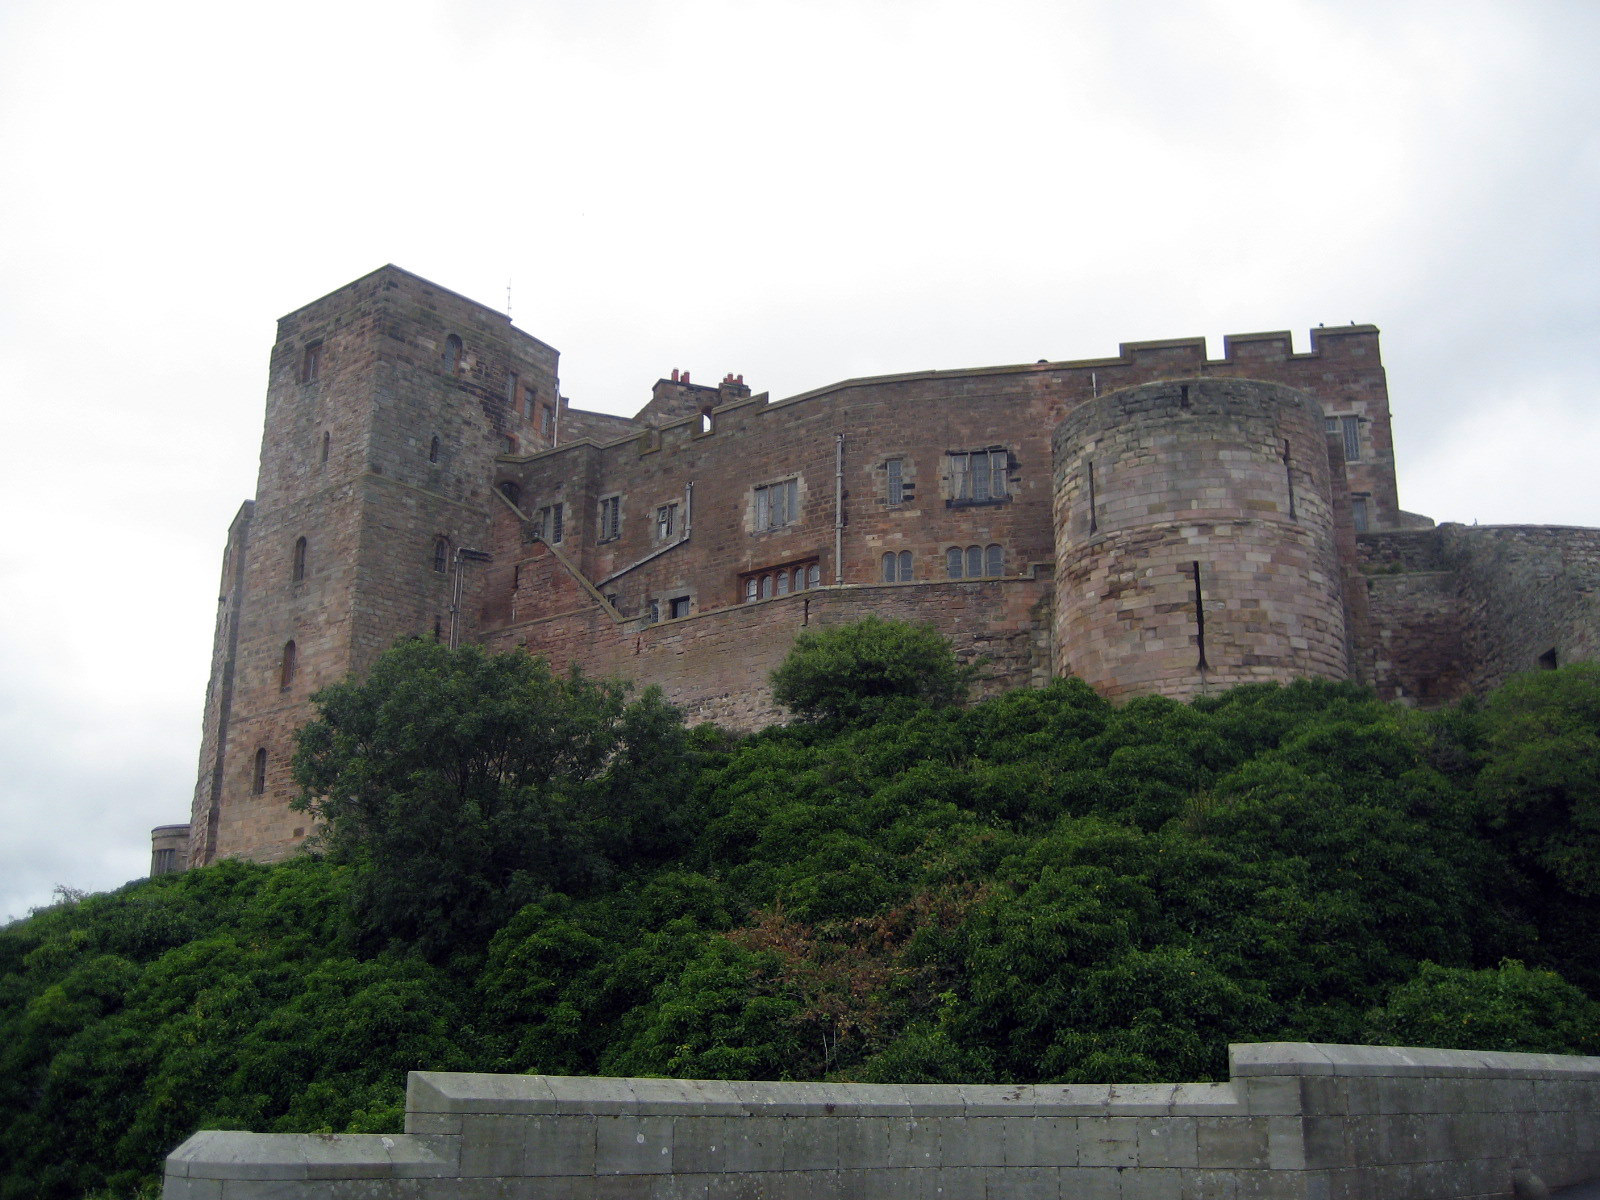 bamburgh castle - photo #44